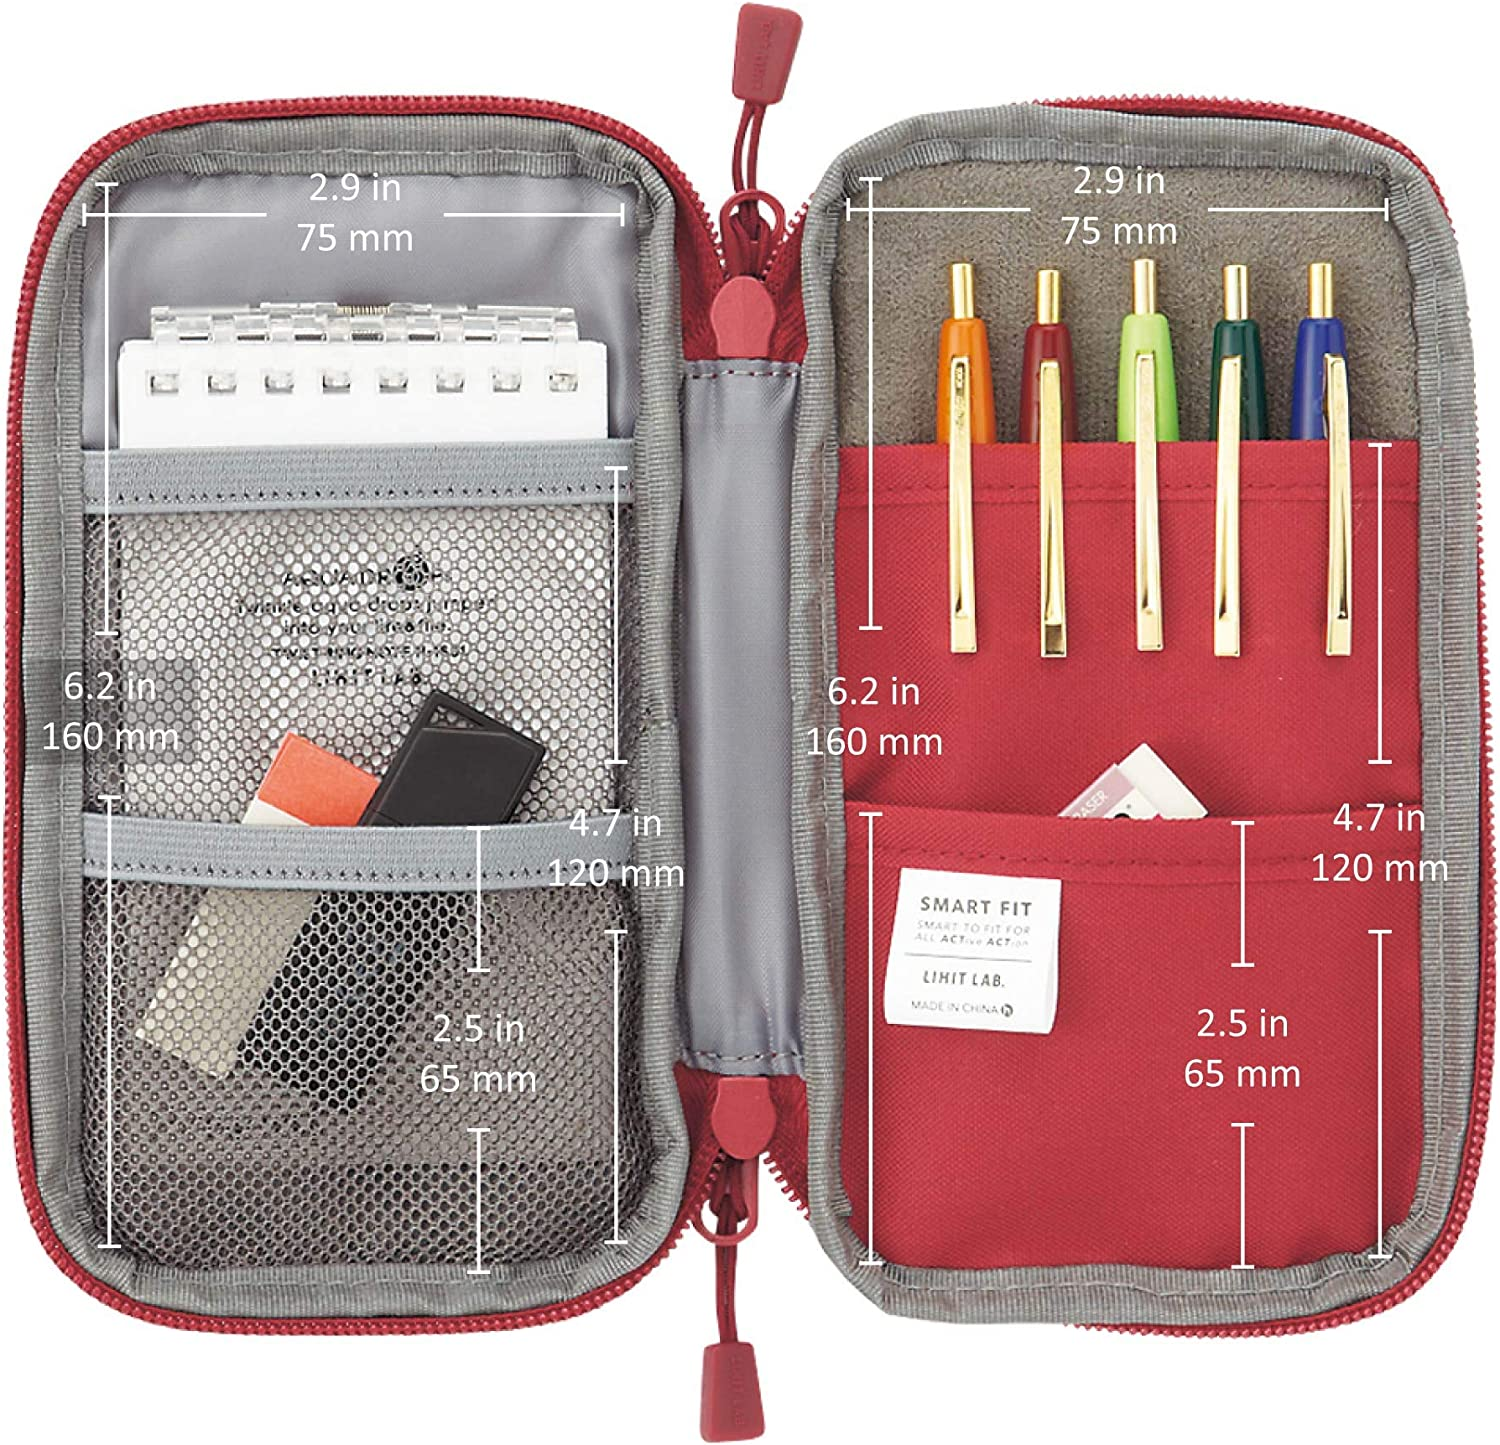 Red Pencil Case Water /& Stain Repellent,3.5 x 6.5 A7687-3 LIHIT LAB Compact Pen Case